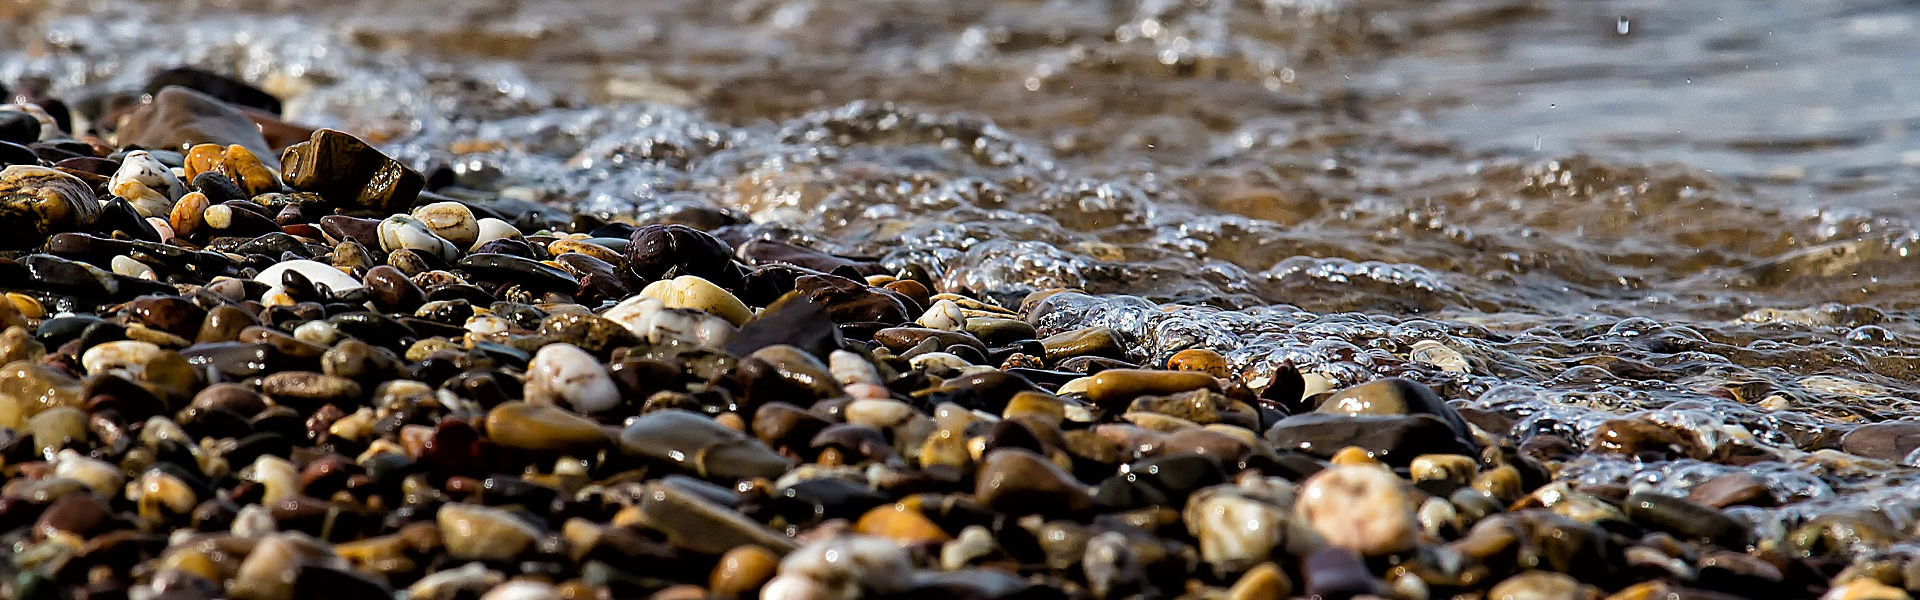 Stones near a beach with water lapping on the shore